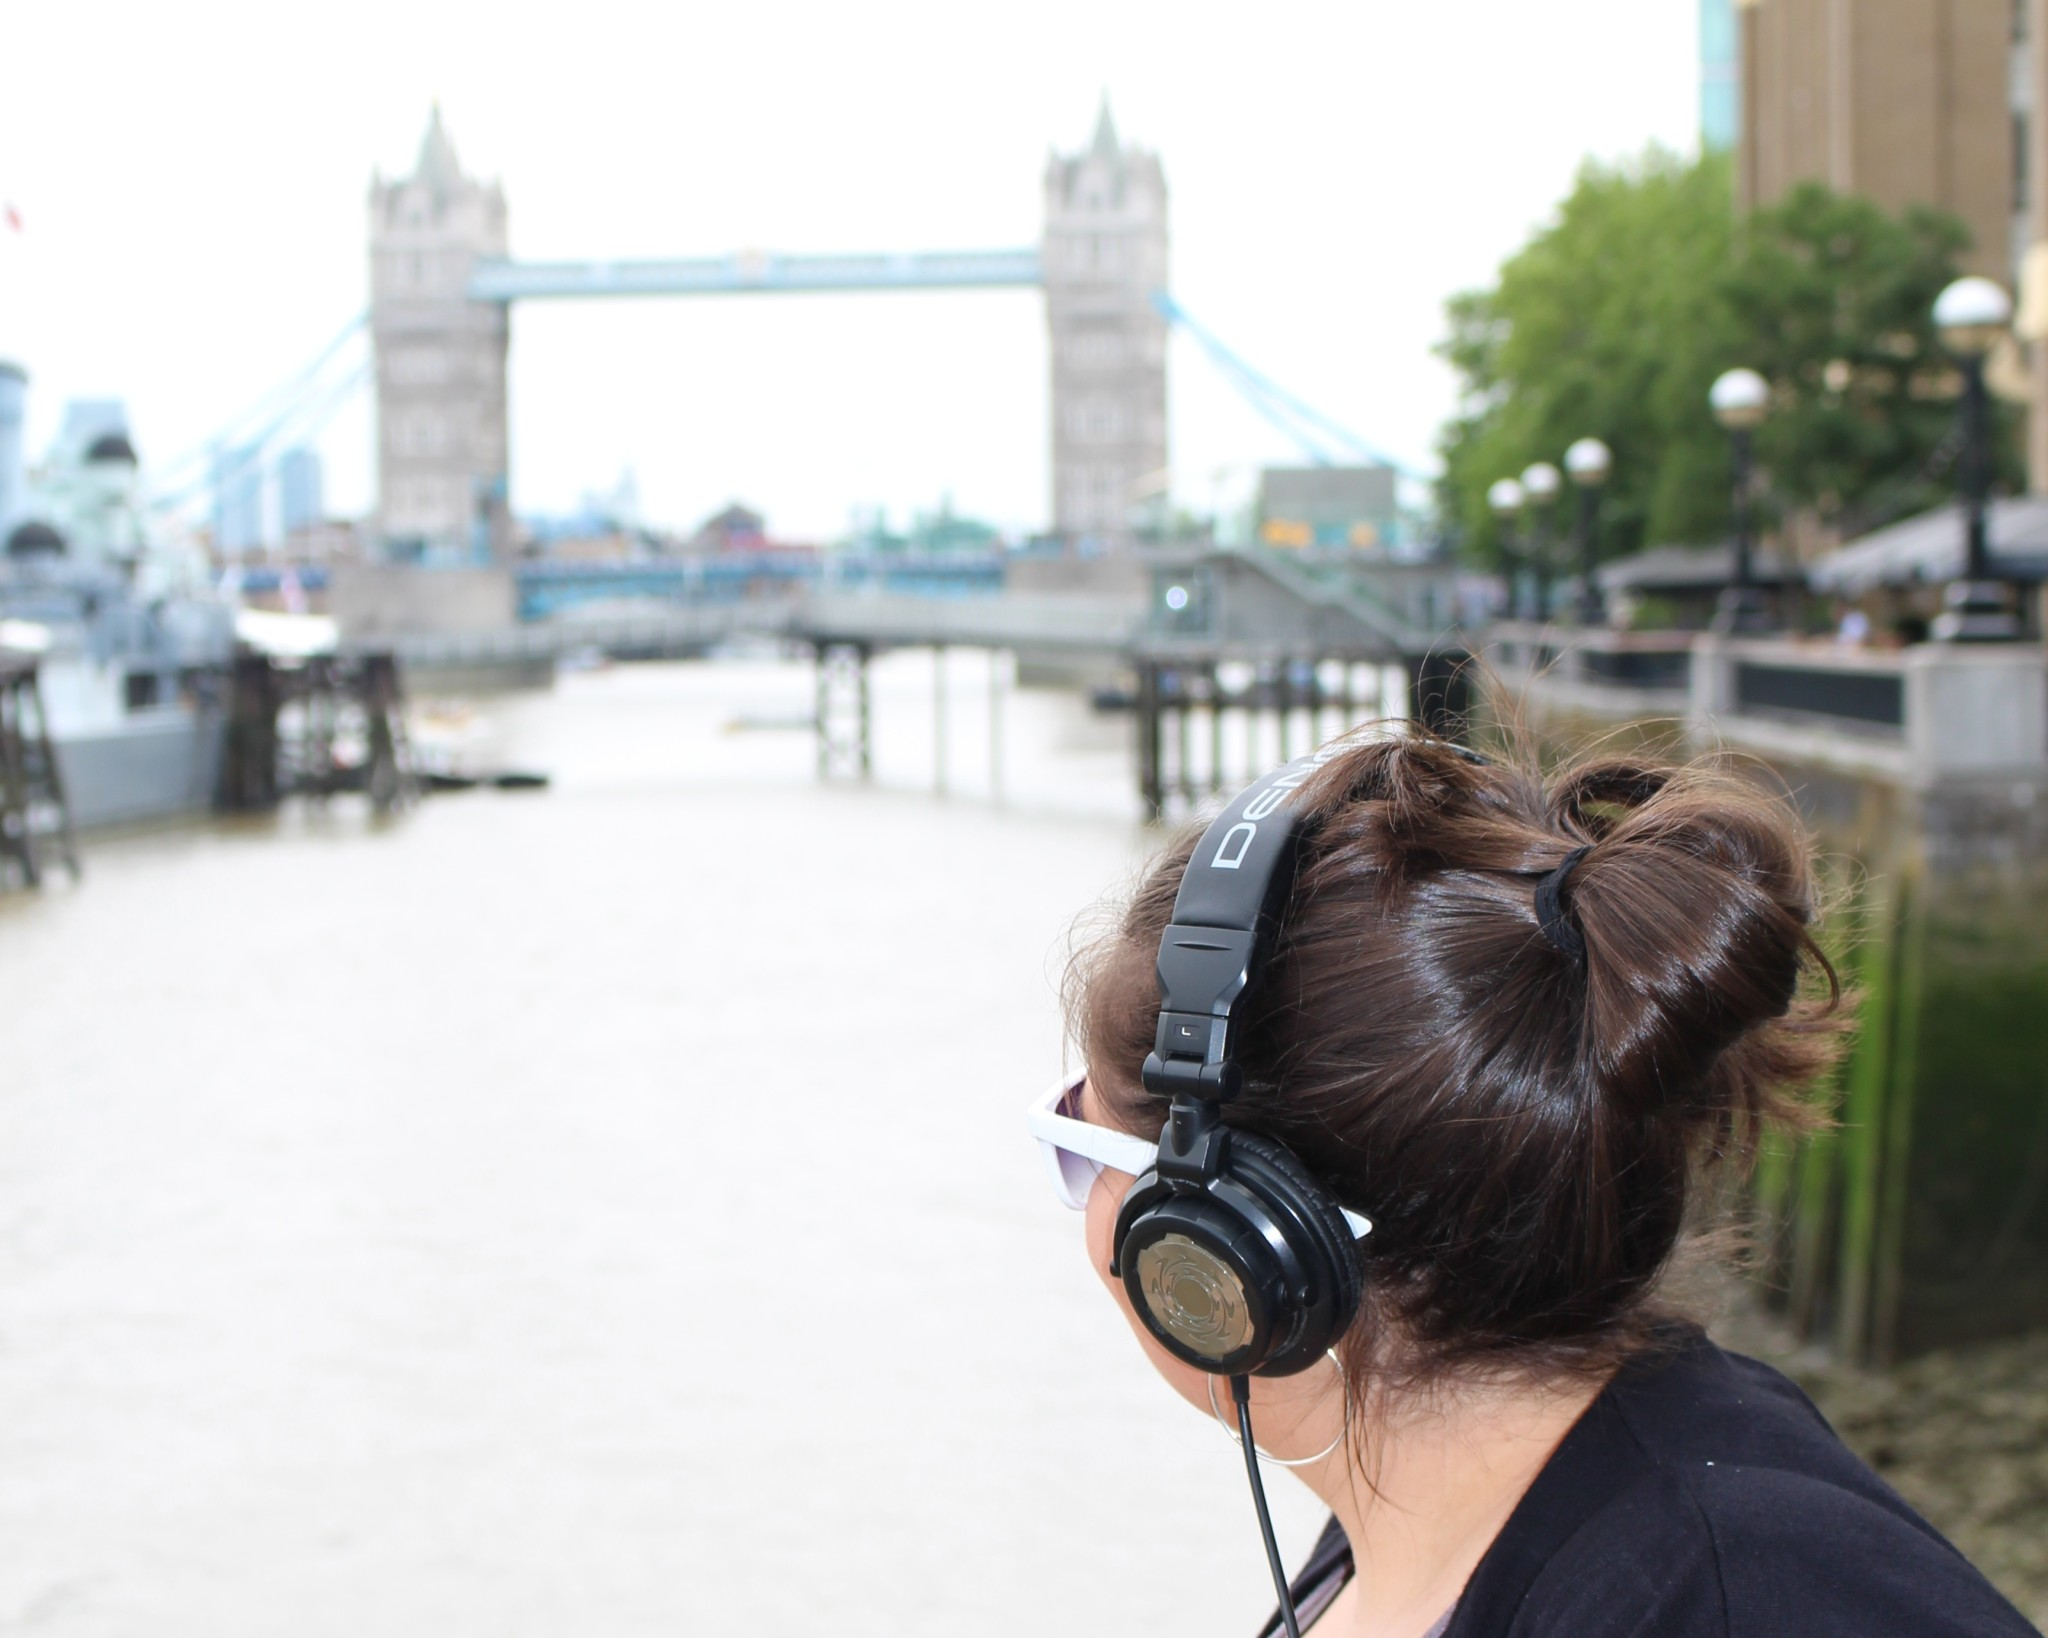 3.LeahBarclay - Listening to the Thames